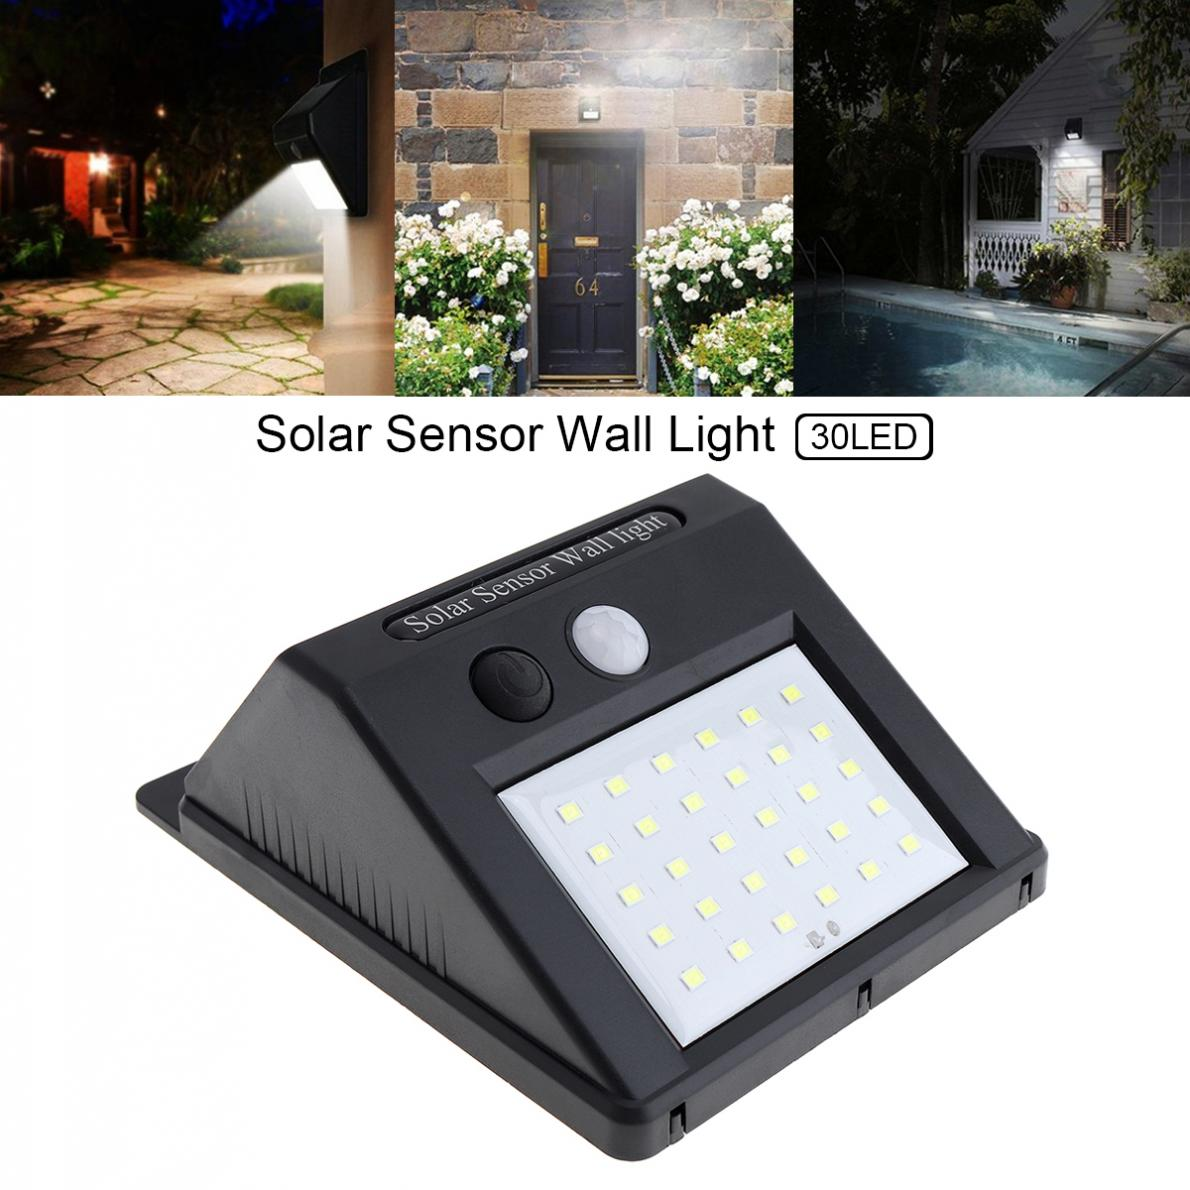 Holan Solar Sensor Light Outdoor Waterproof 30 LED Solar Sensor Wall Light With Light Sensation Switch For Garden Yard Driveway